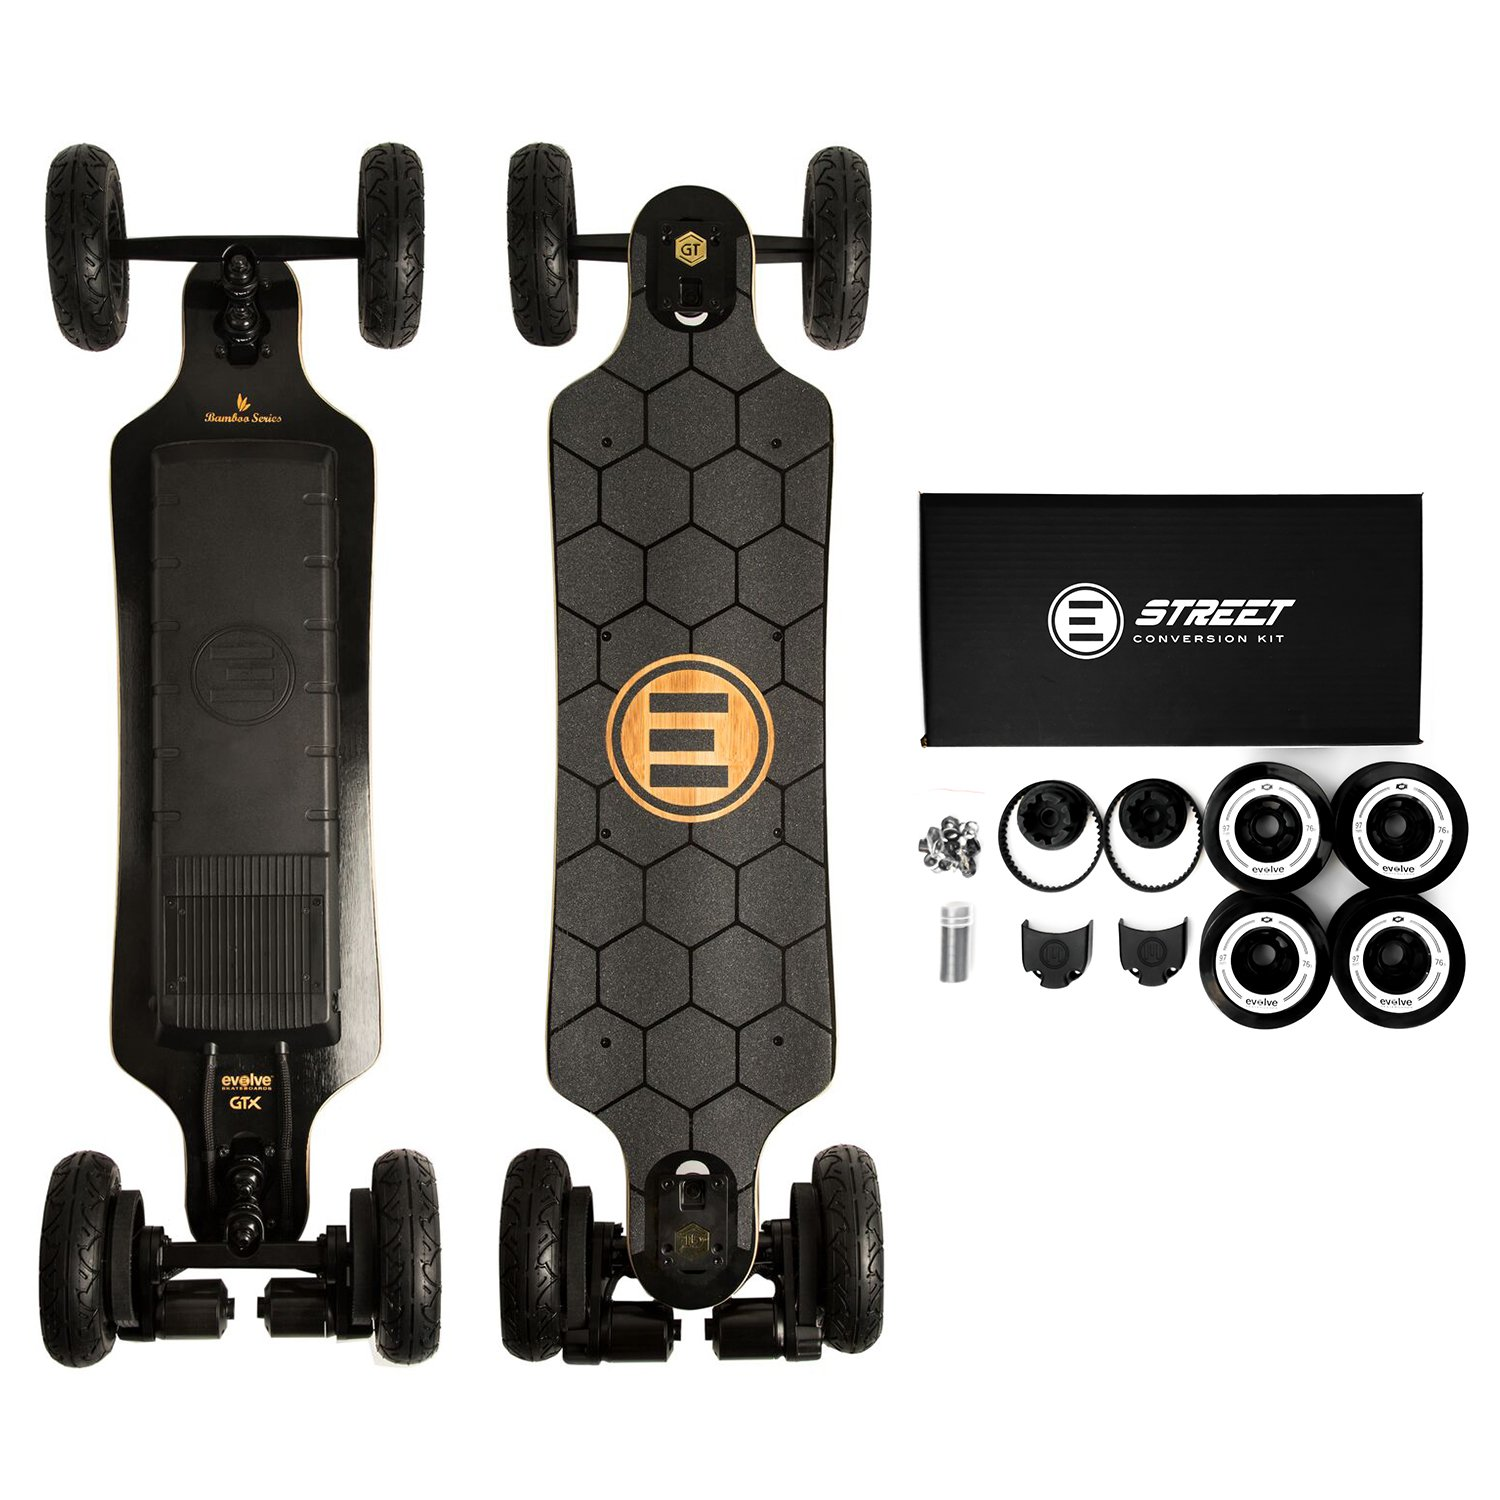 Evolve Skateboards – Bamboo GTX Street AND All-Terrain Electric Longboard Skateboard – 31 Mile Range – 26 mph Top Speed –Digital LCD Screen Remote Control – Lithium-Ion Battery